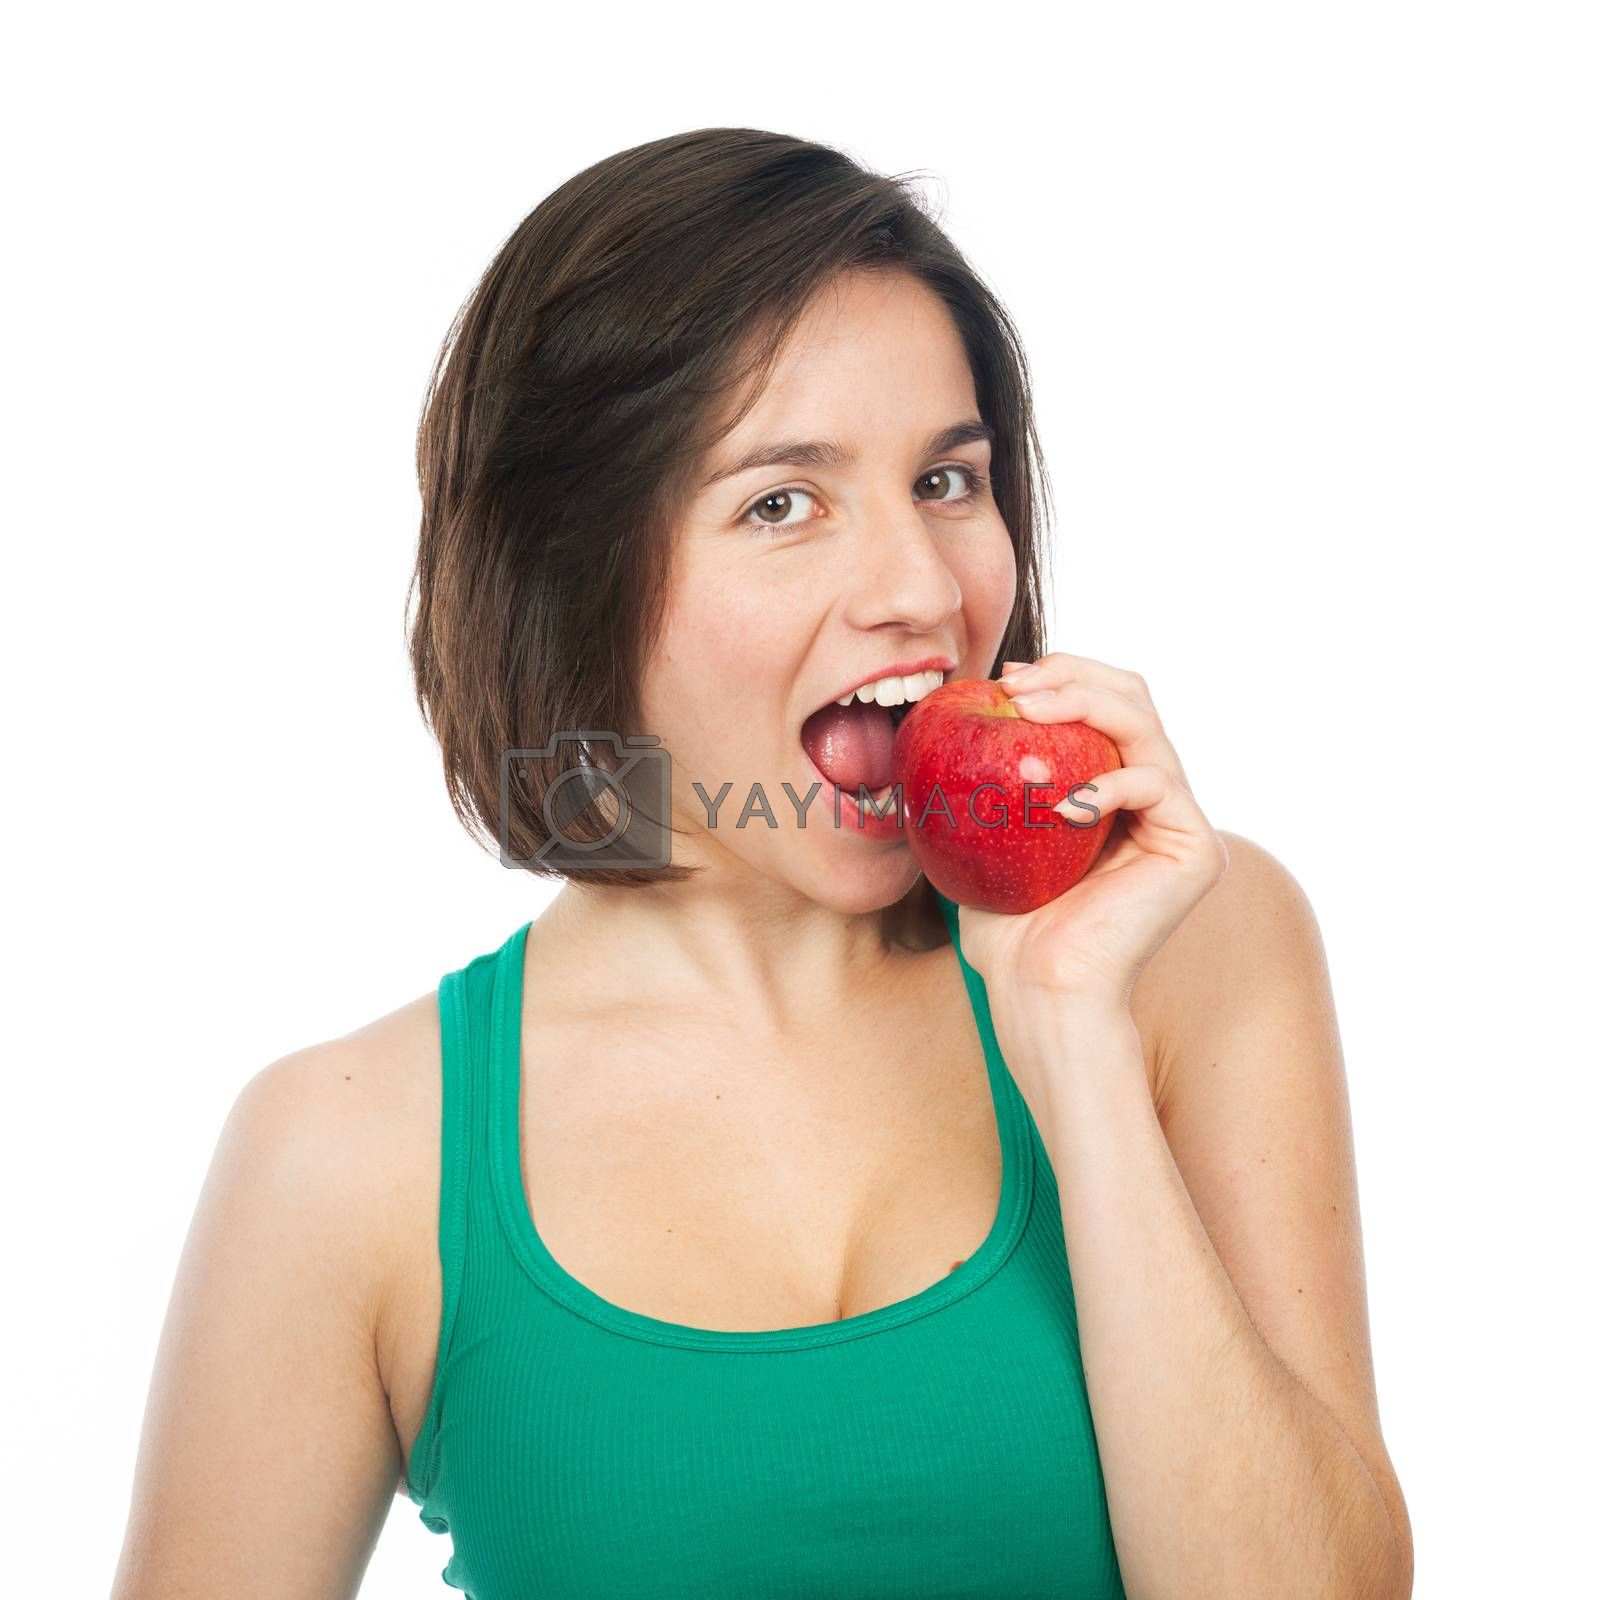 Beautiful young woman eating a red apple, isolated on white